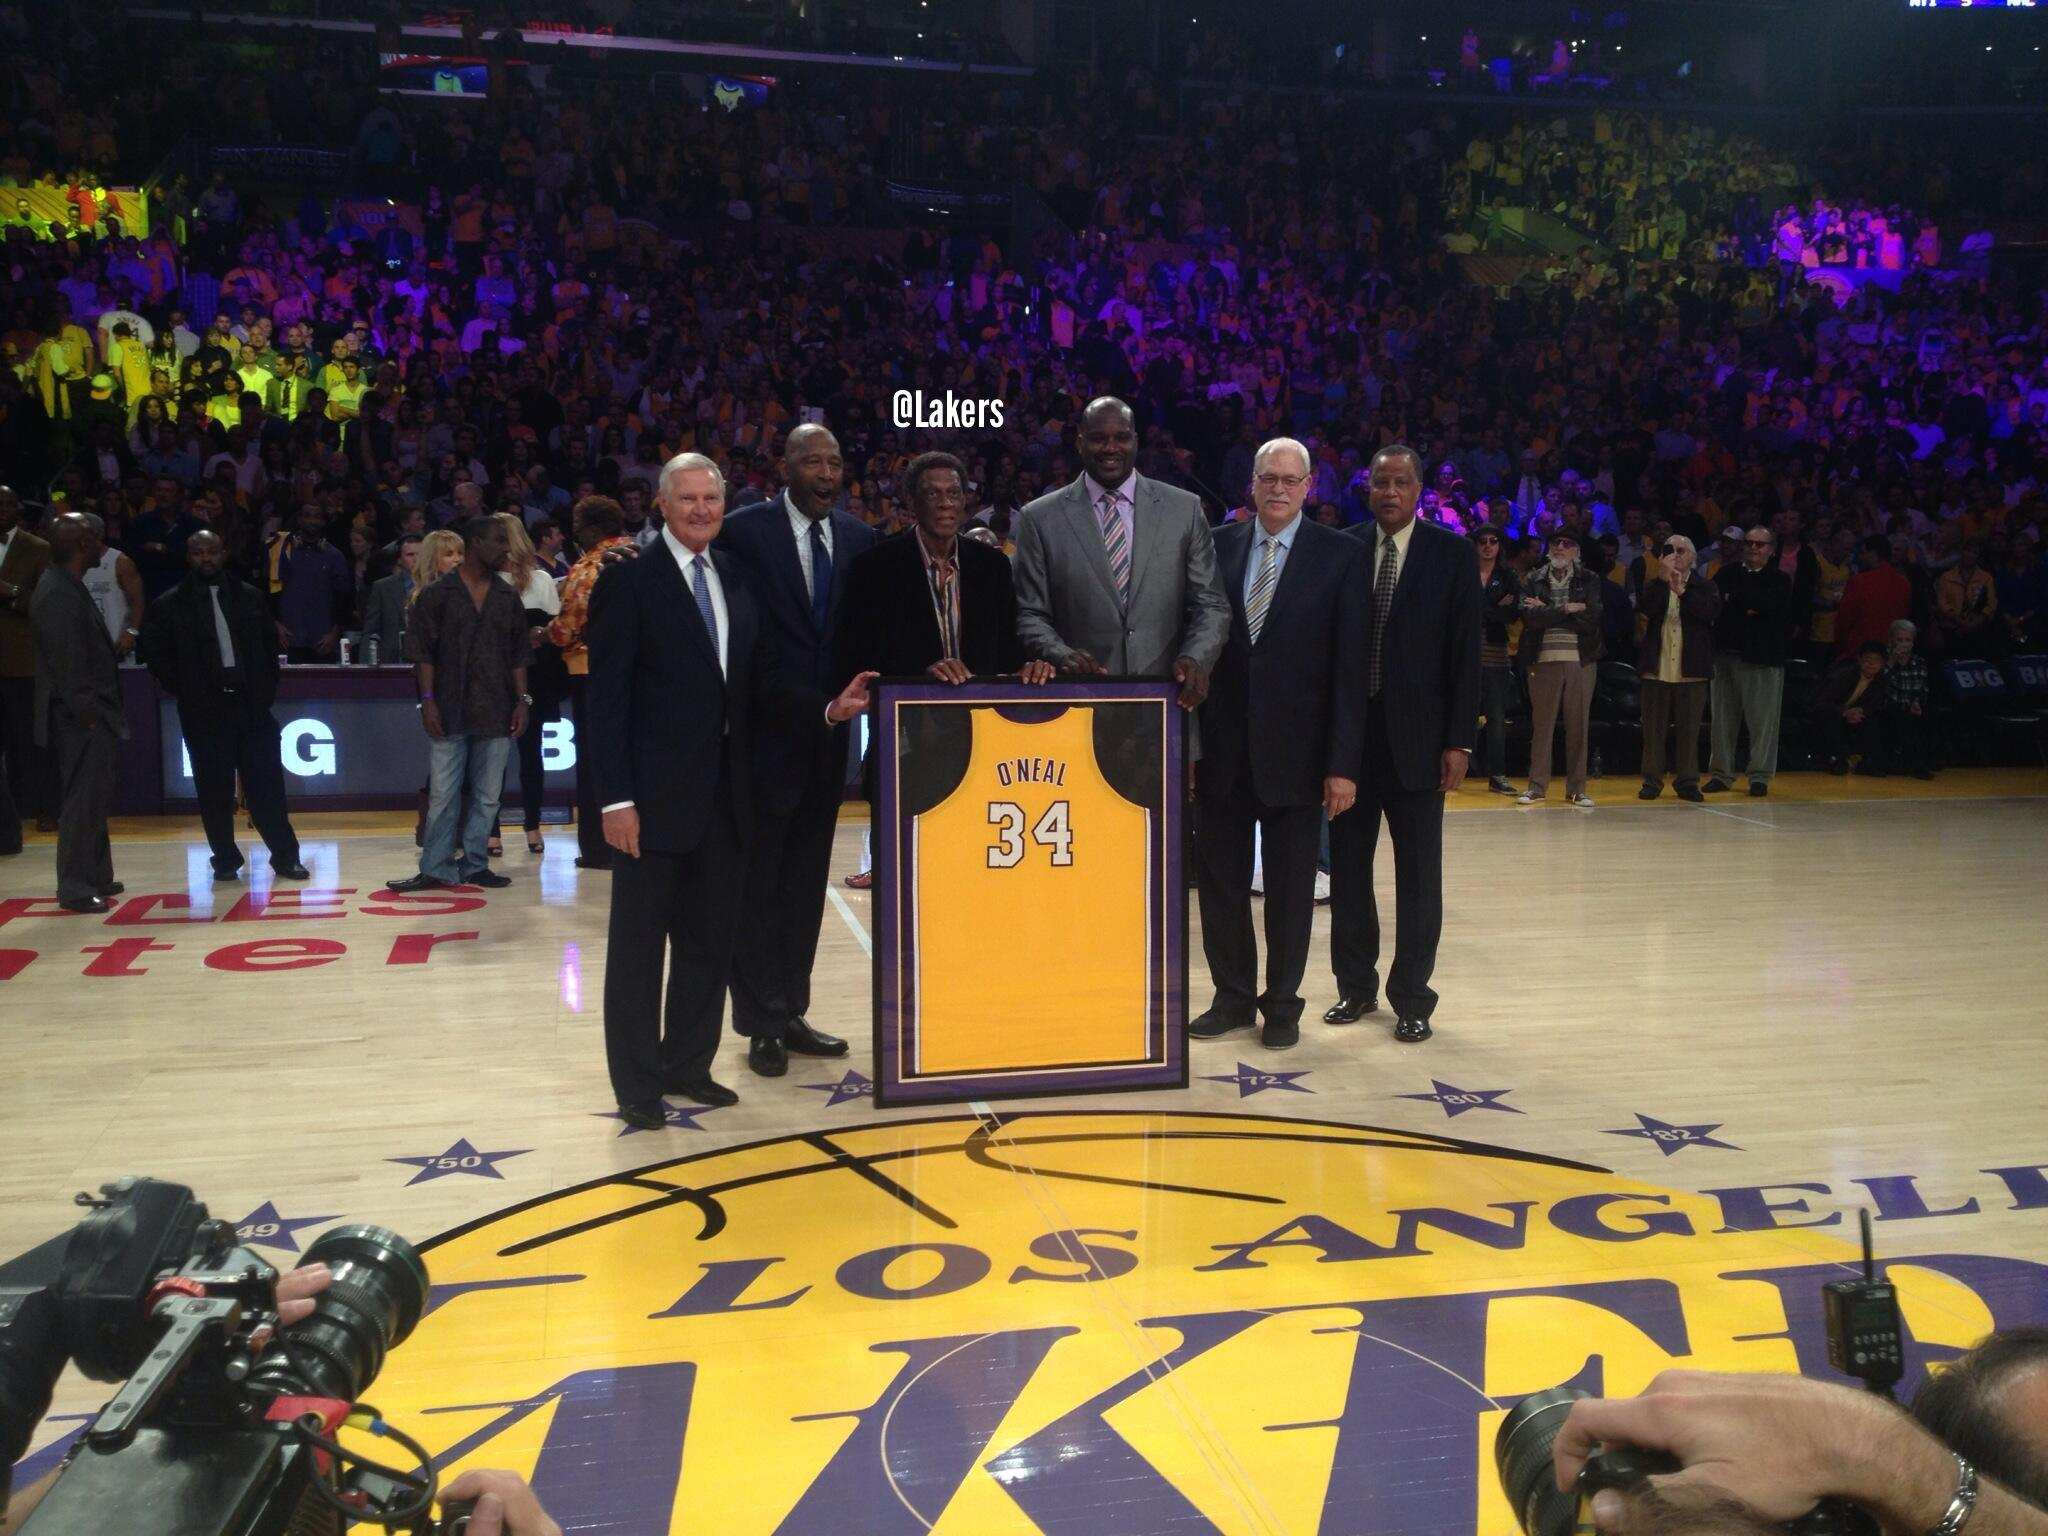 RT @Lakers: Shaq stands with fellow Lakers legends Jerry West, James Worthy, Elgin Baylor, Phil Jackson & Jamaal Wilkes. #SHAQ34 http://t.co/mlb1EYMj7c